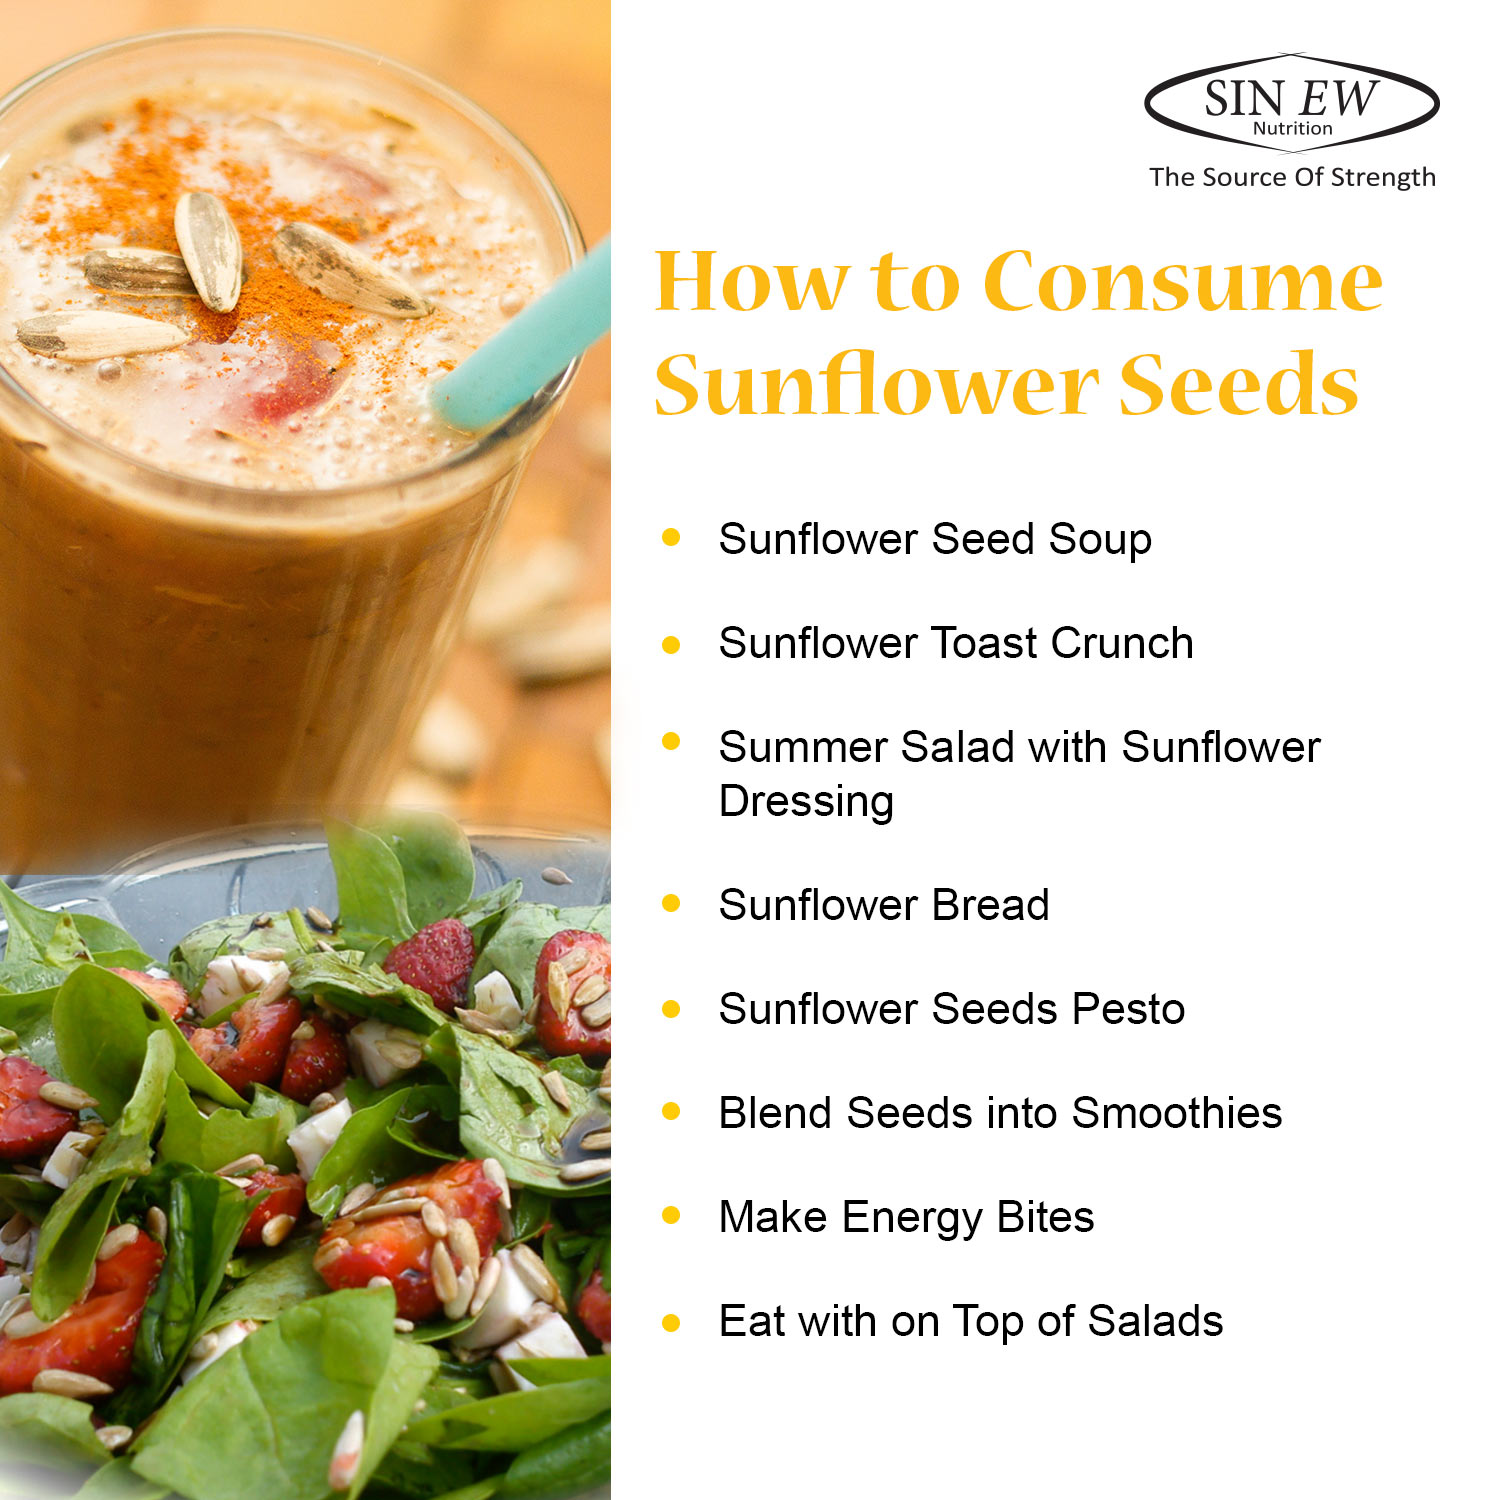 How To Consume Sunflower Seeds